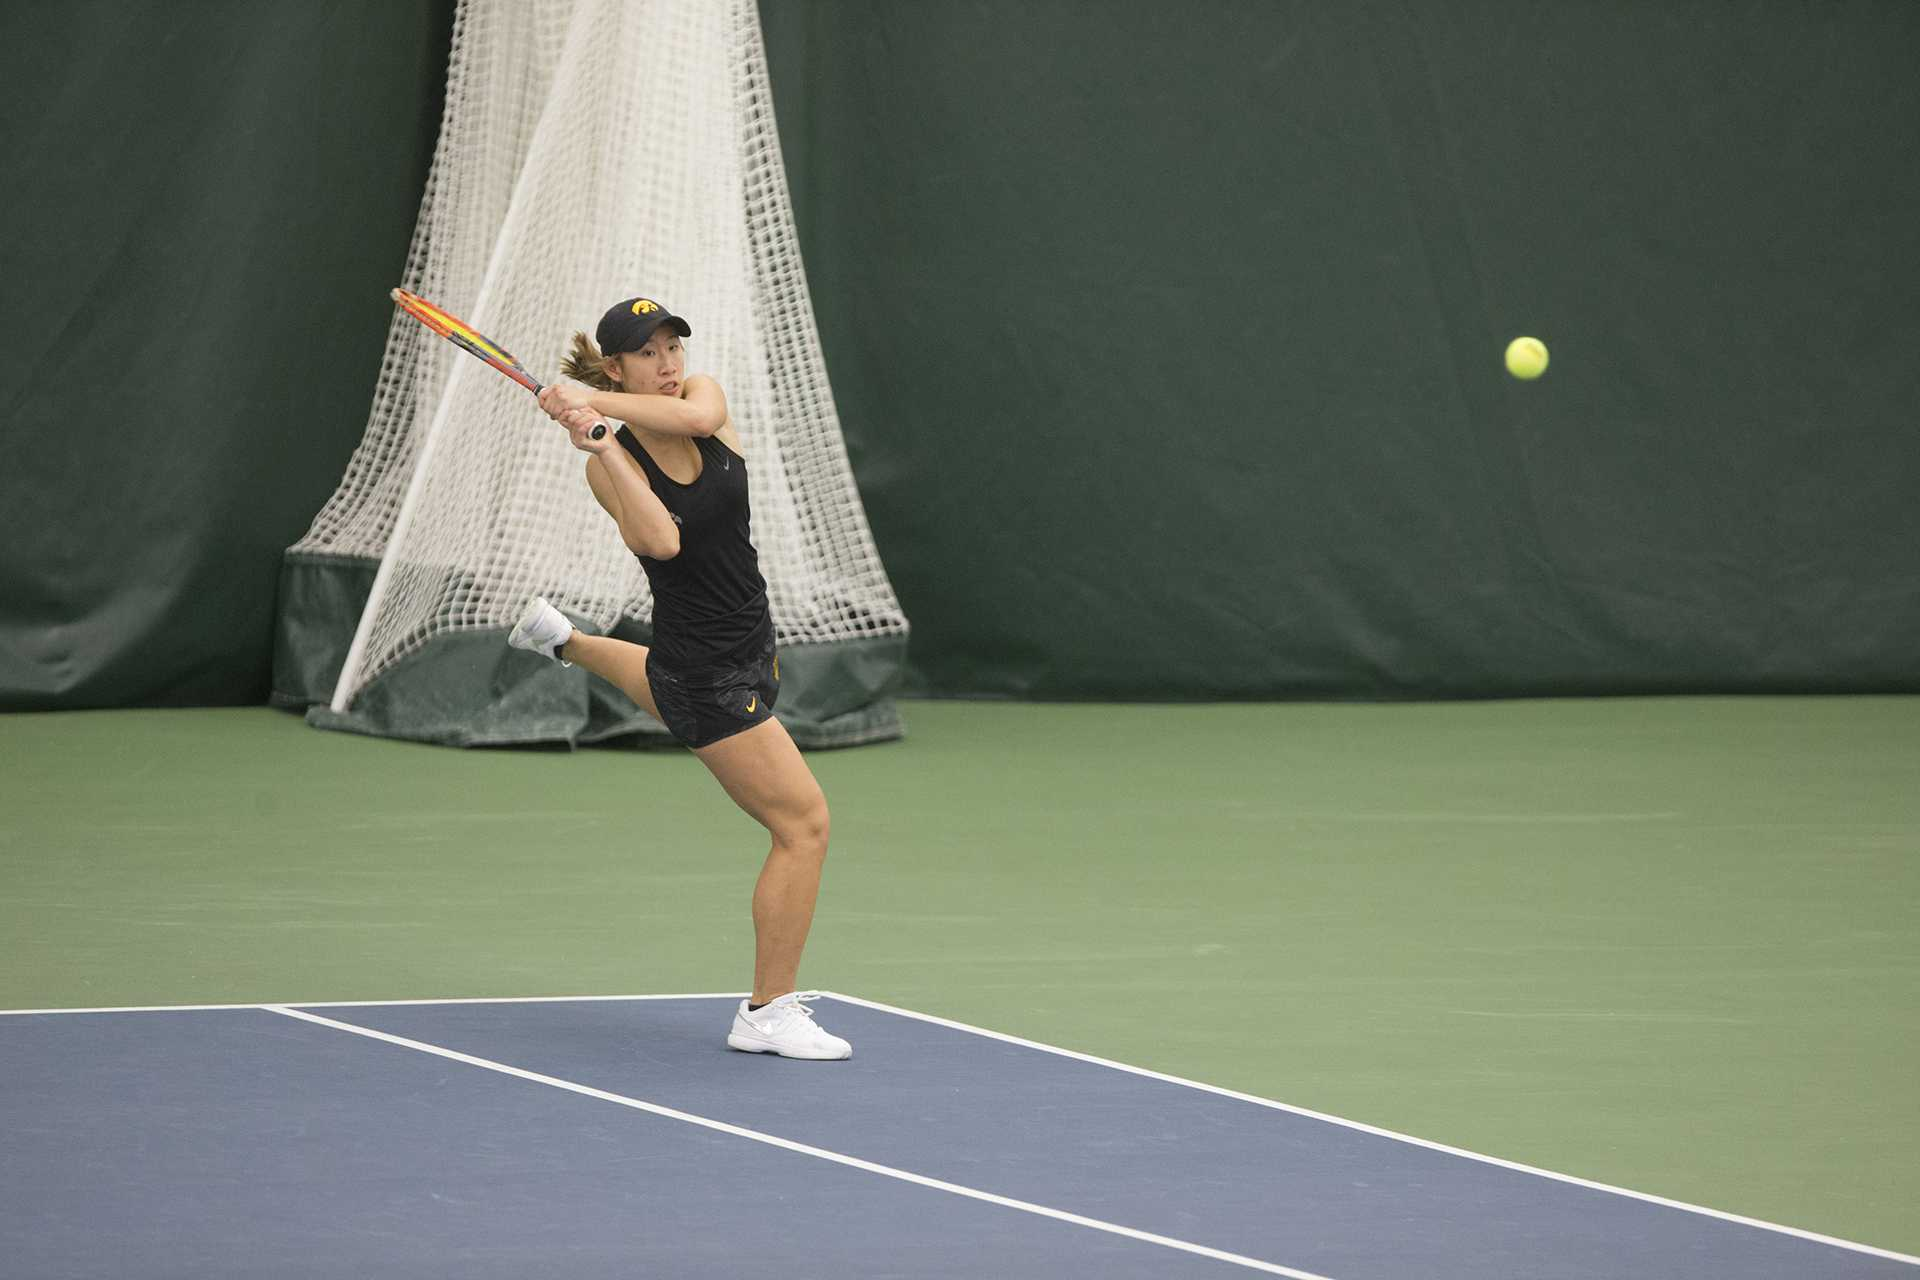 Iowa's Yufei Long wails a backhand during a tennis match between Iowa and Northern Iowa in Iowa City on Saturday, Jan. 20, 2018. The Hawkeyes defeated the Panthers, 7-0. (Shivansh Ahuja/The Daily Iowan)